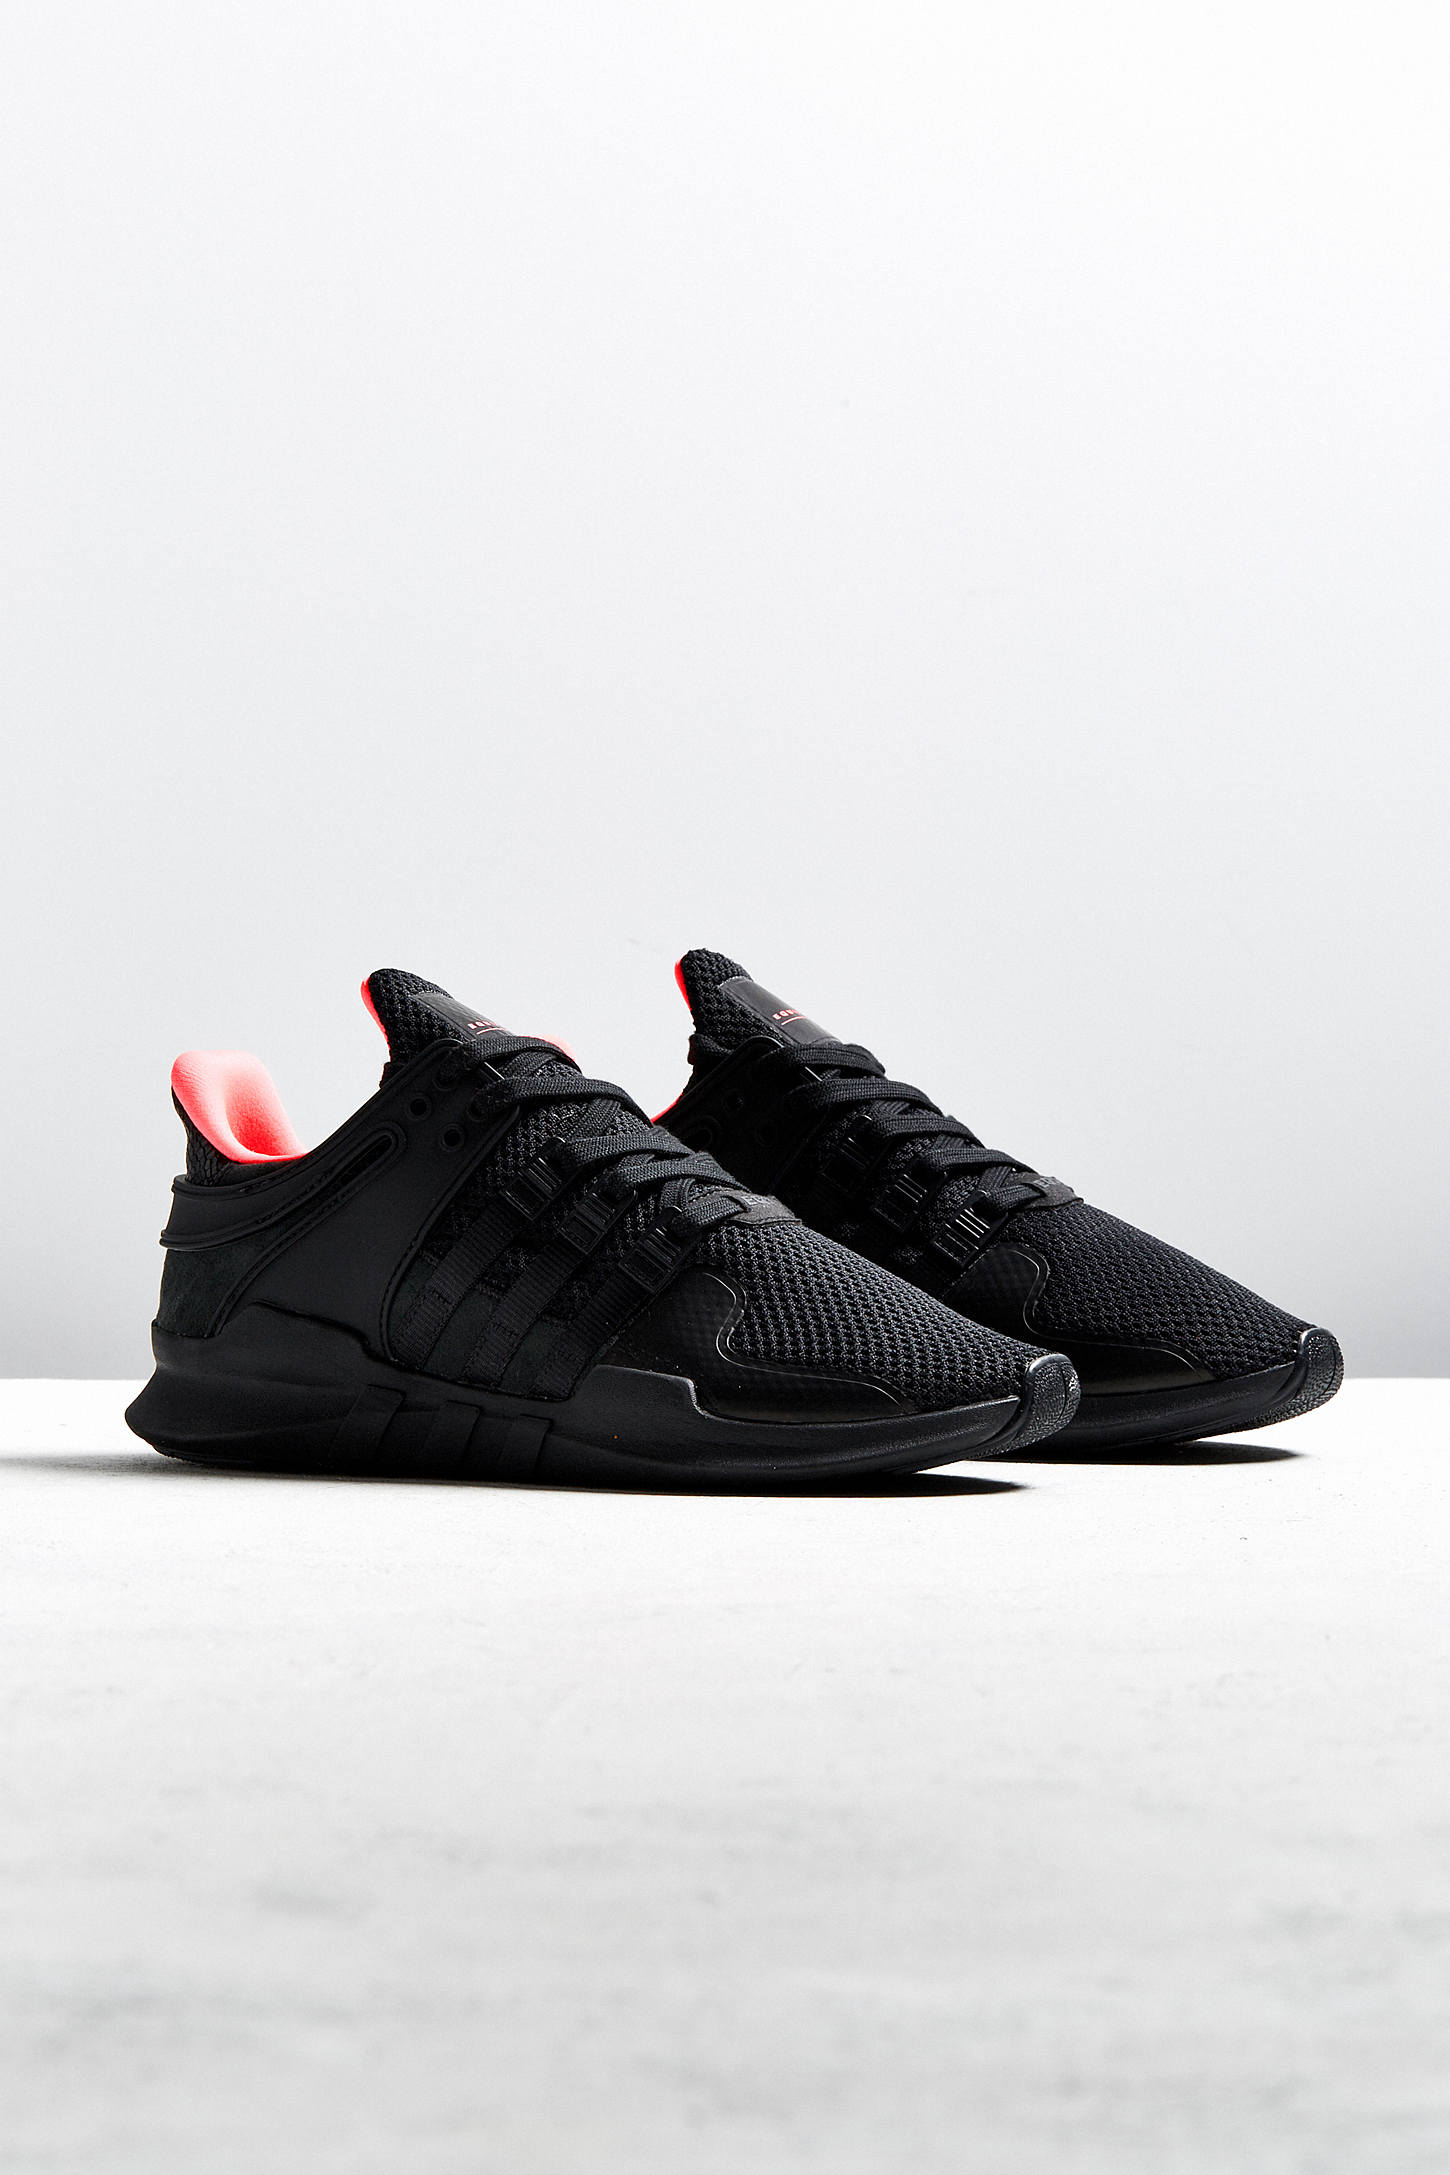 The adidas EQT Support ADV Crystal White Turbo Red Releases